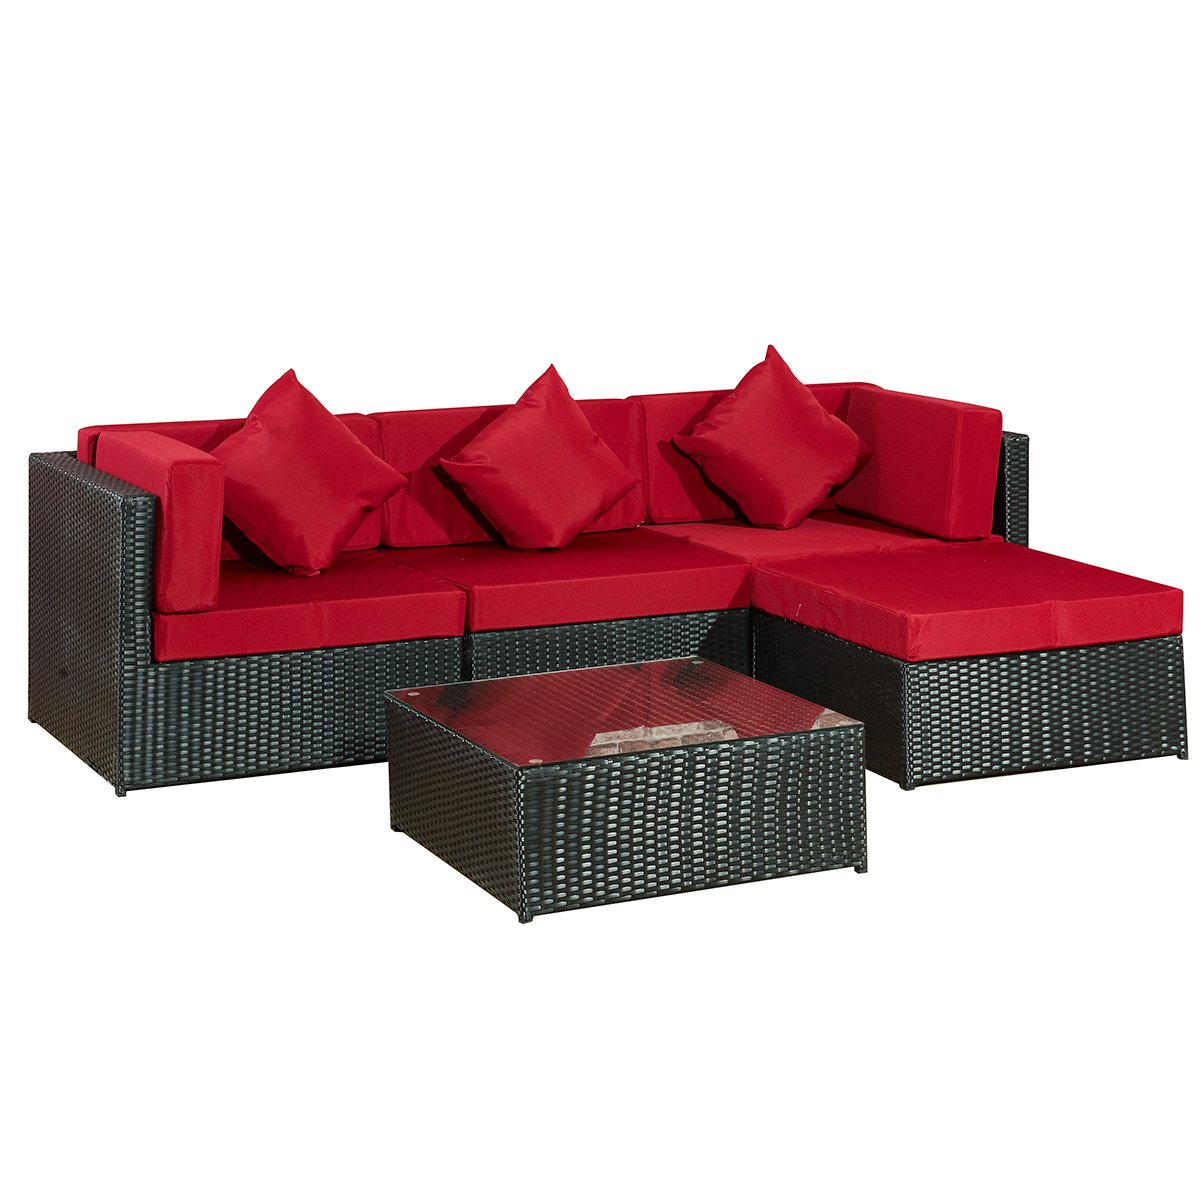 gartenmoebel bergen ii schwarz rot aus stahl garten polyrattan rattan lounge set neu. Black Bedroom Furniture Sets. Home Design Ideas